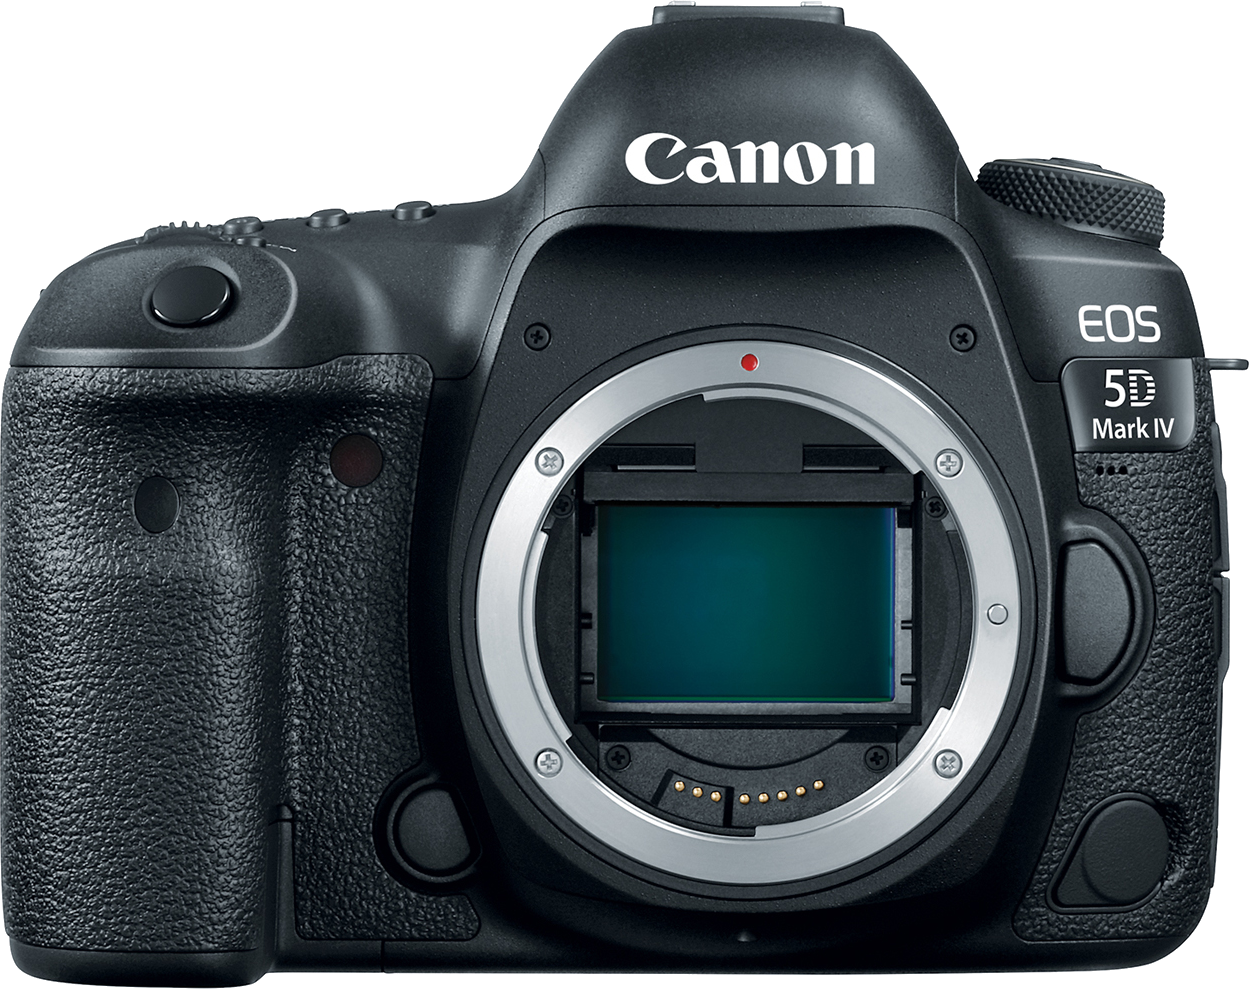 30.4 megapixel DSLR with 7fps, built-in wifi and touch screen